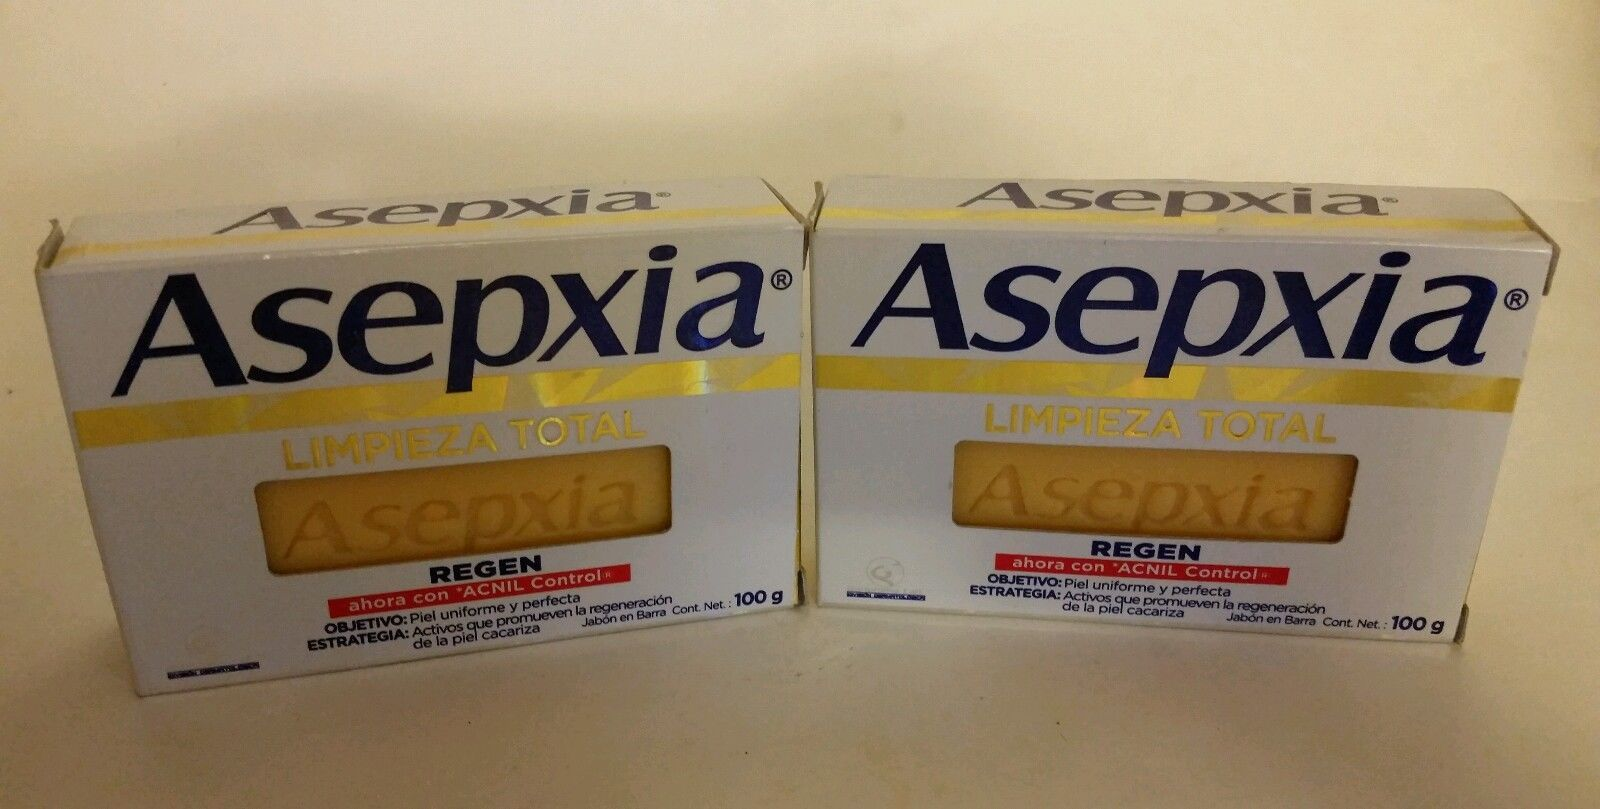 ASEPXIA Regen { Limpieza Total } 100g x 2 bars of acne fighting soap NEW FORMULA